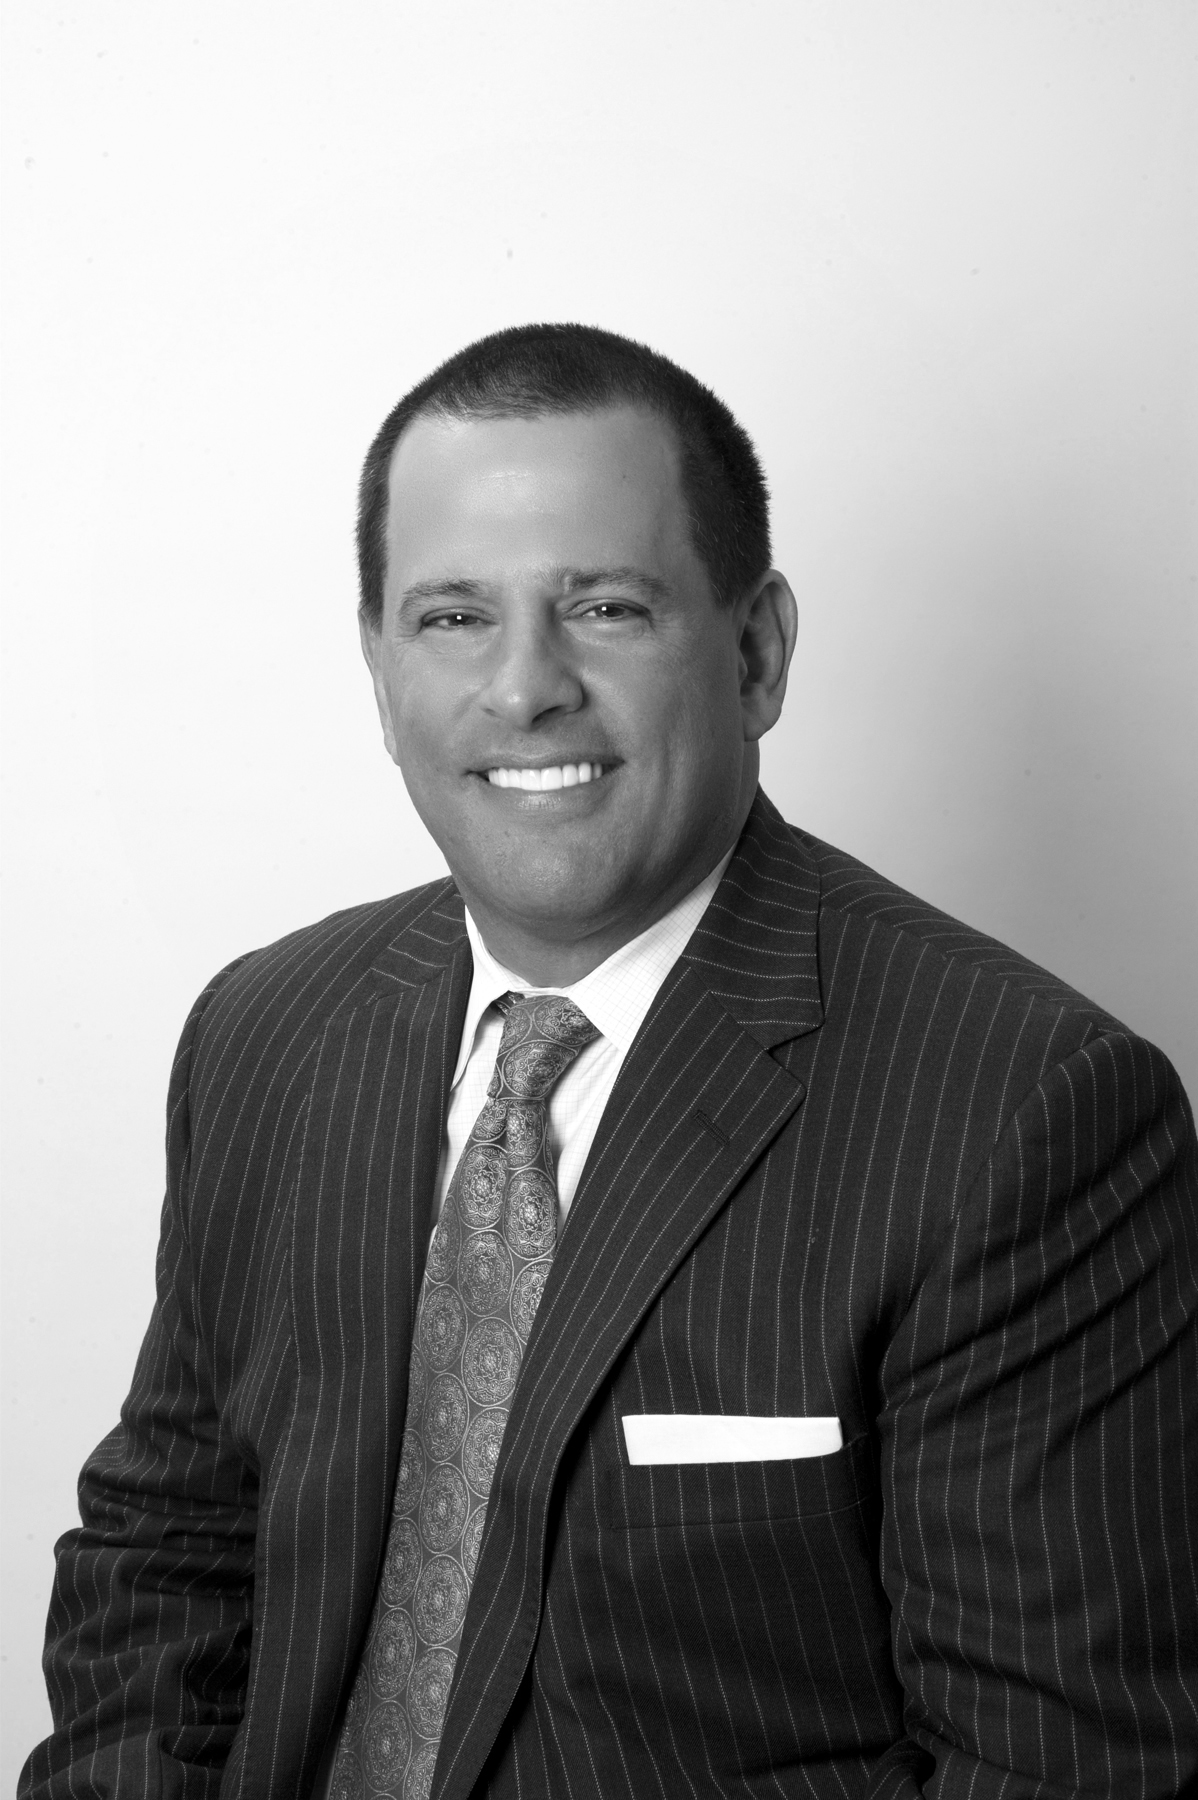 Christopher McMahon, financial advisor Cranberry Township PA